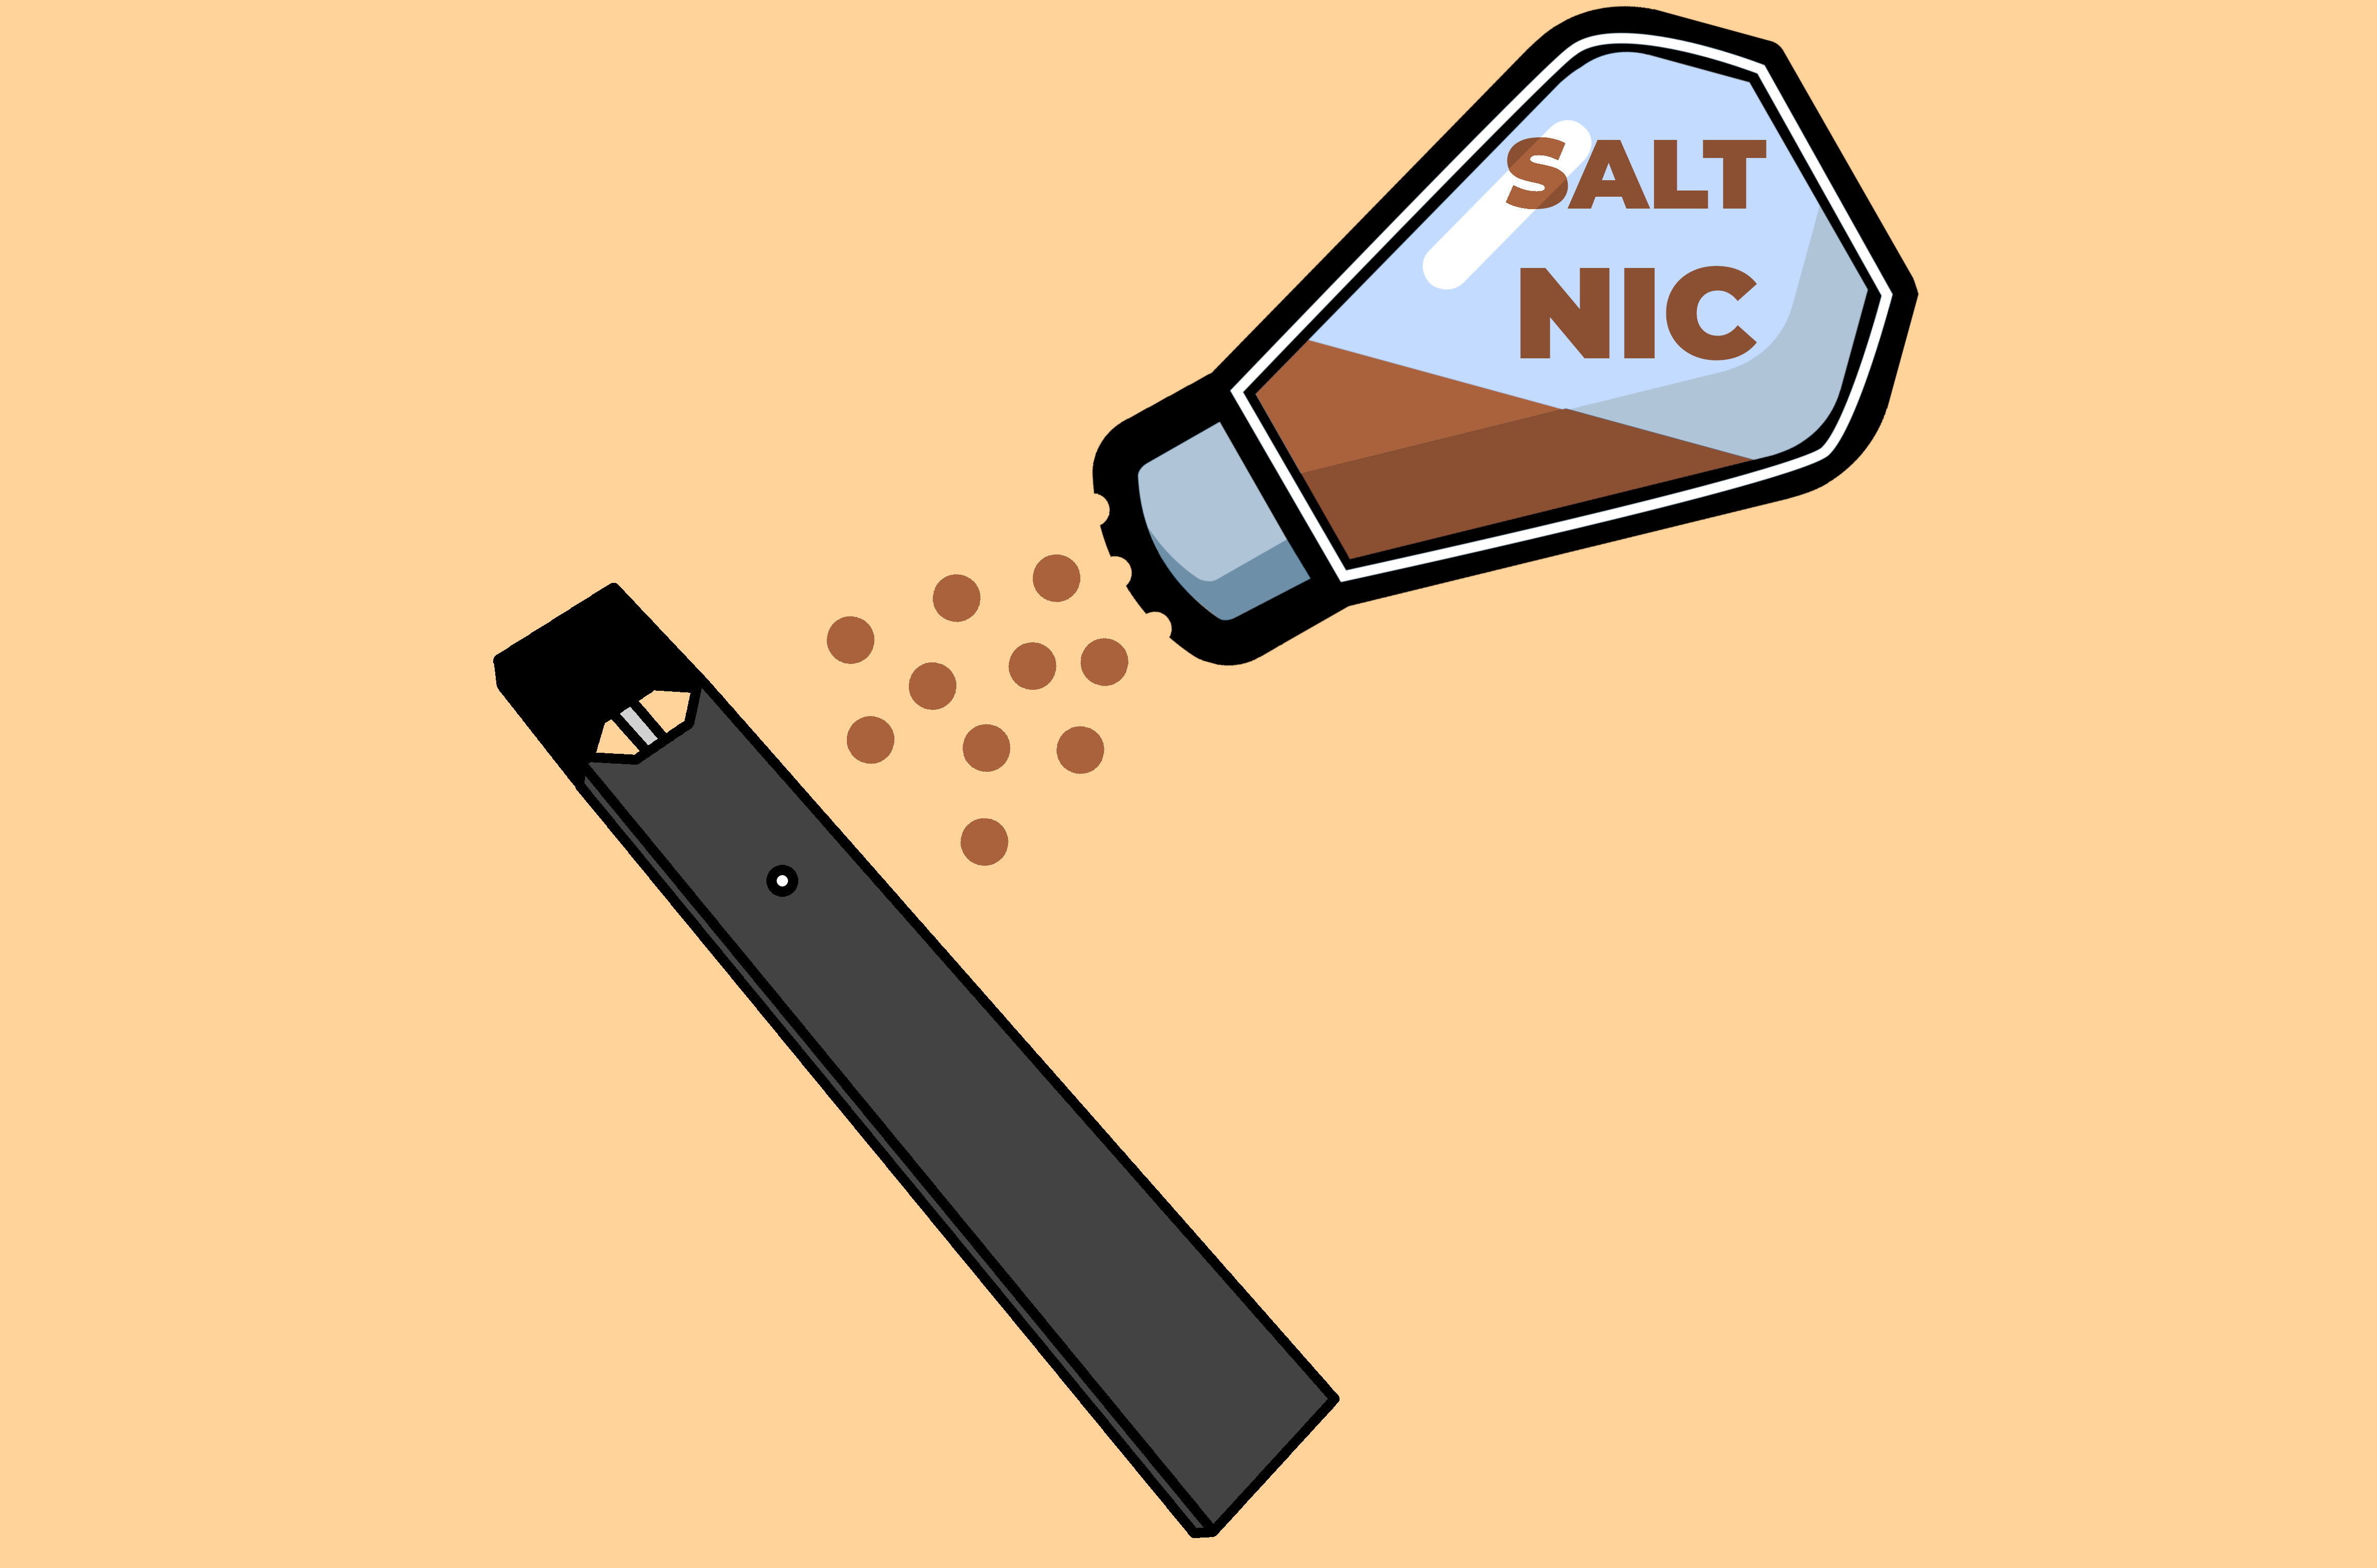 Best Nicotine Salt Brands for 2021